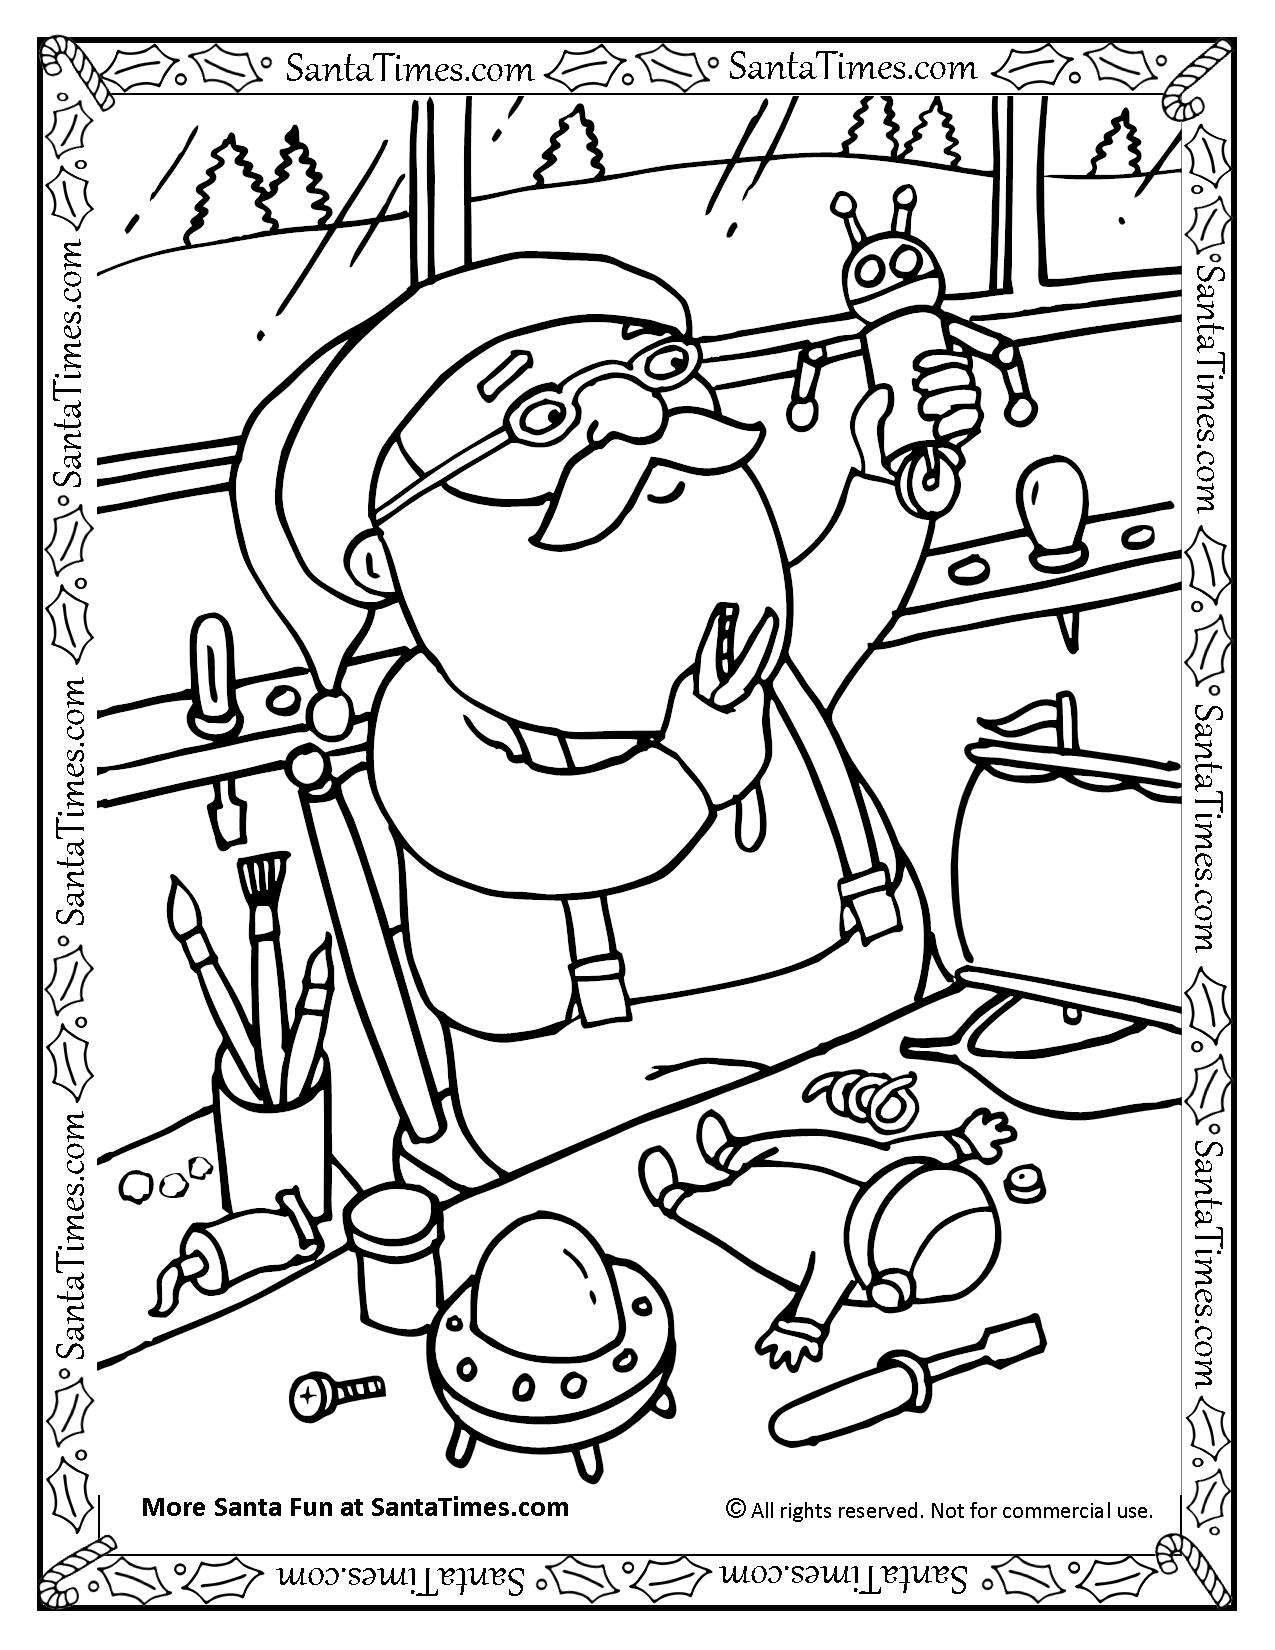 Free Christmas Village Coloring Pages With Santa Claus On His Sleigh